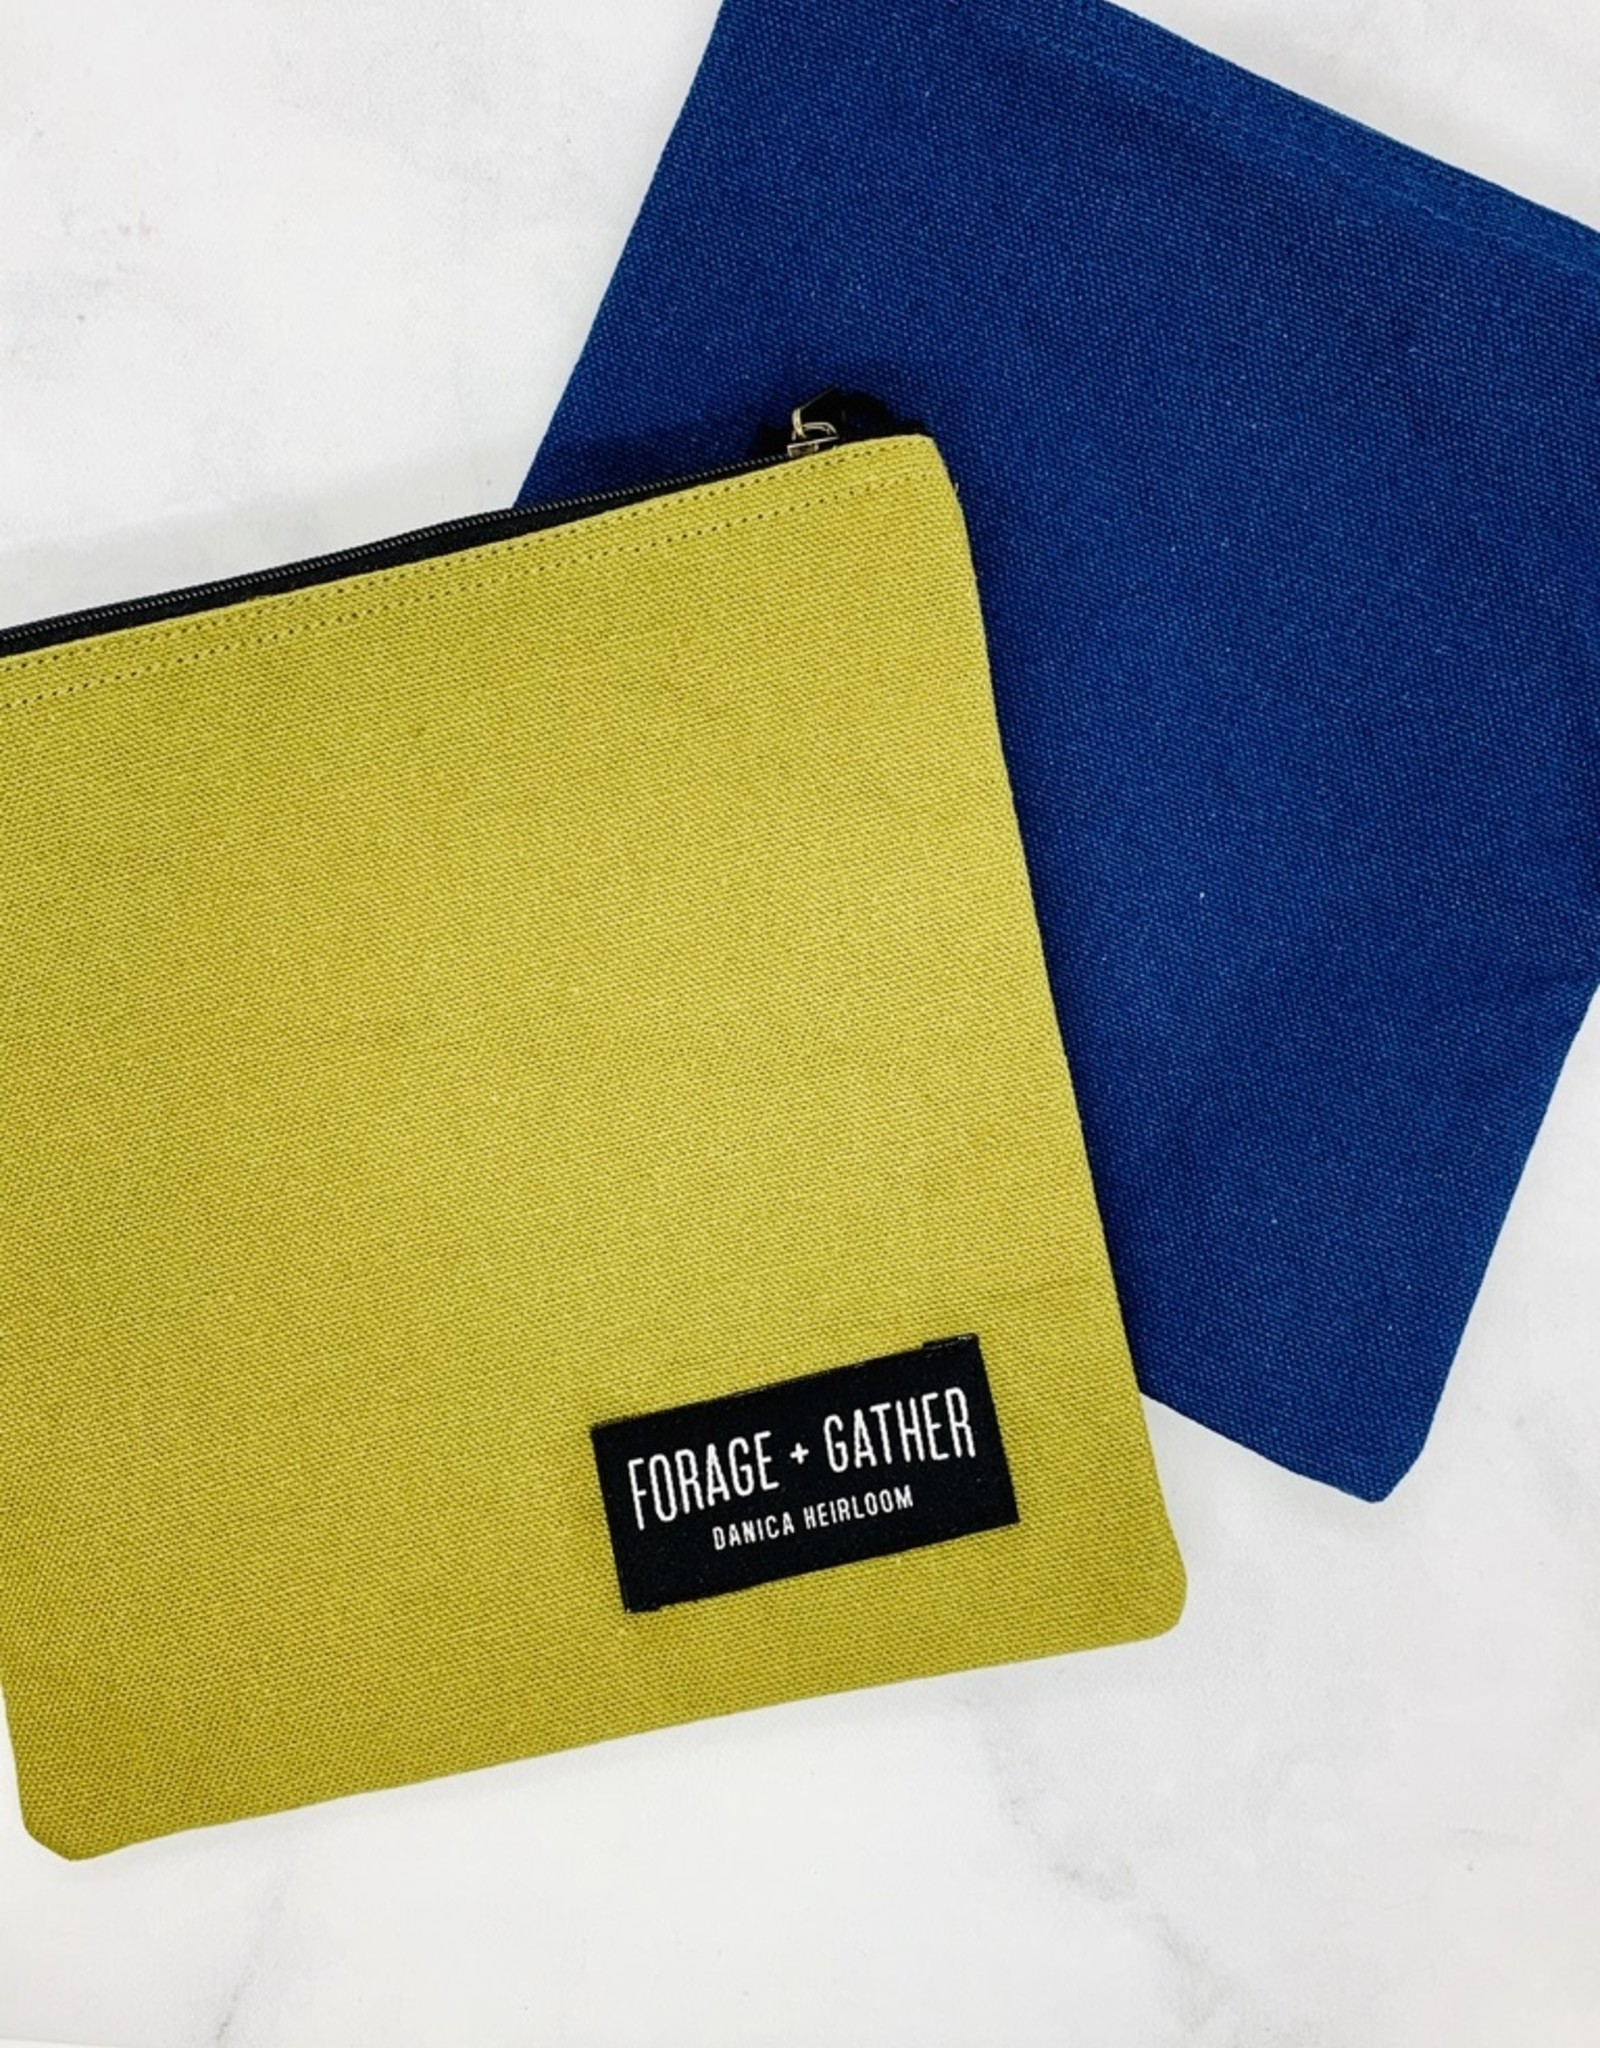 Forage and Gather Snack Bag: